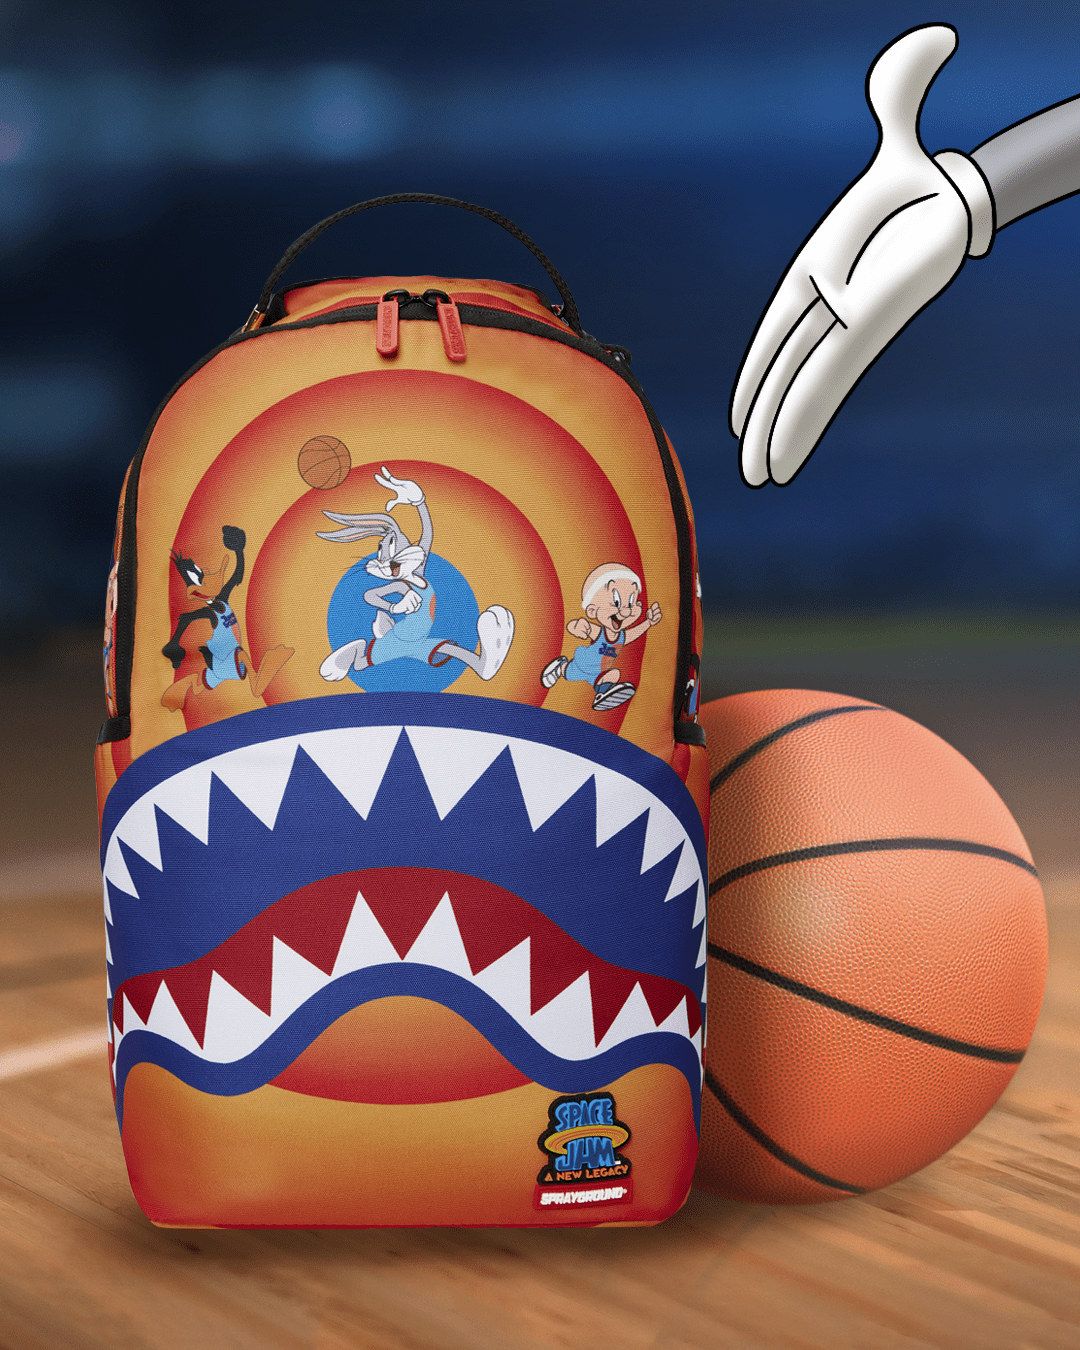 Sprayground Teams Up With 'Space Jam: A New Legacy' For Limited Backpack